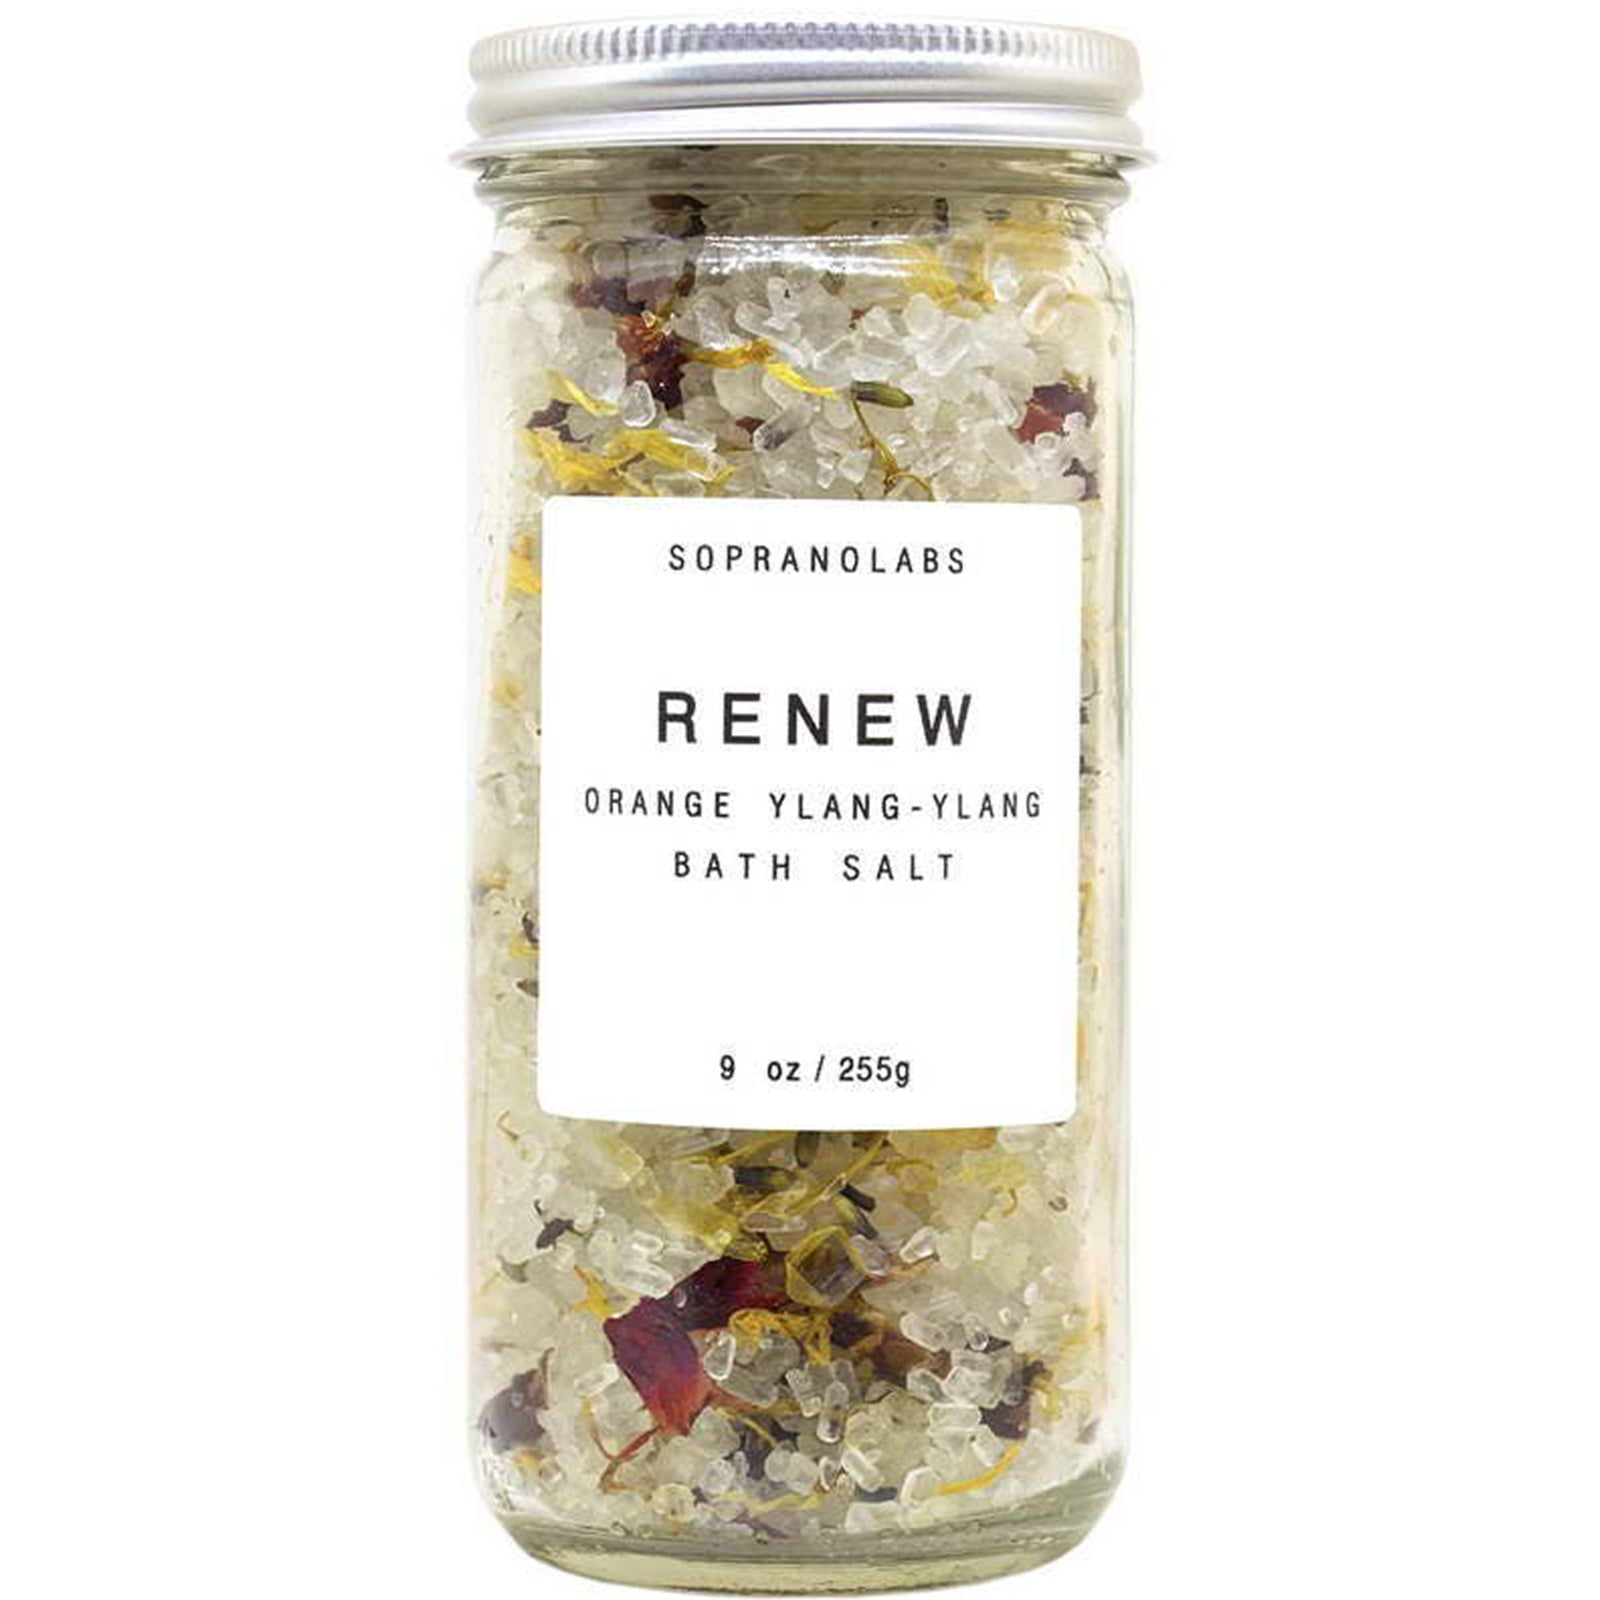 Soprano labs renew ylang ylang bath salt